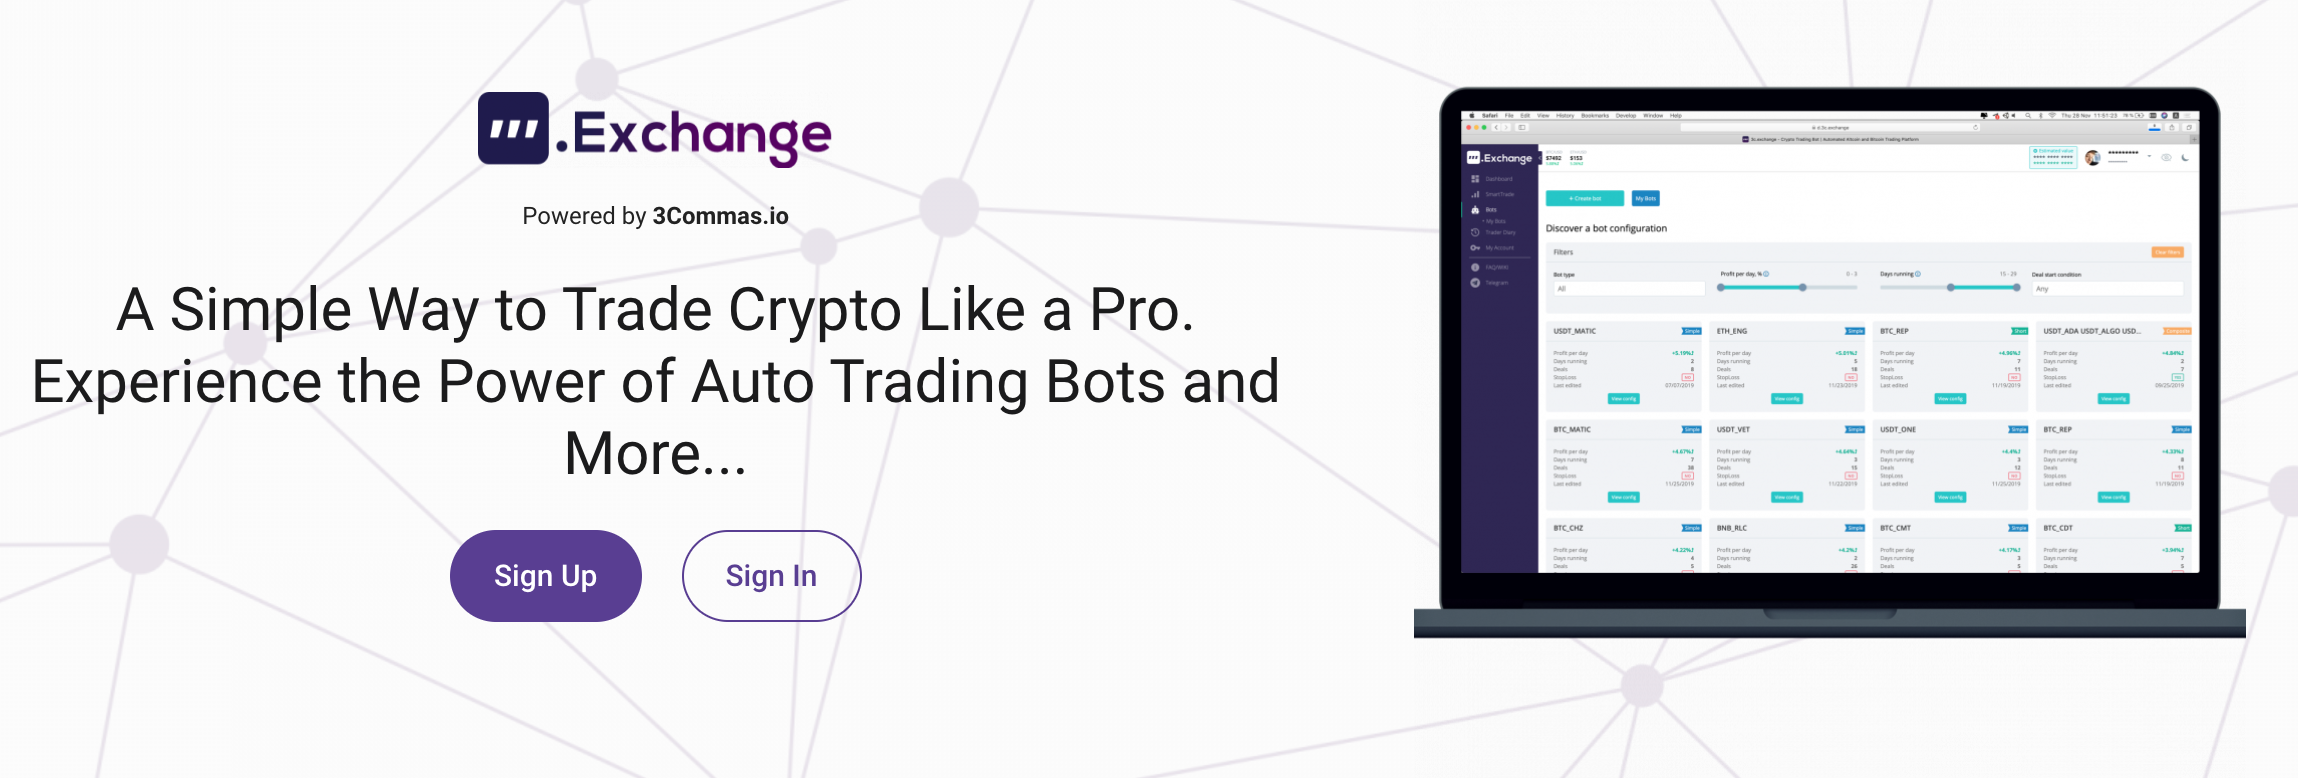 how to build a cryptocurrency trading bot advanced